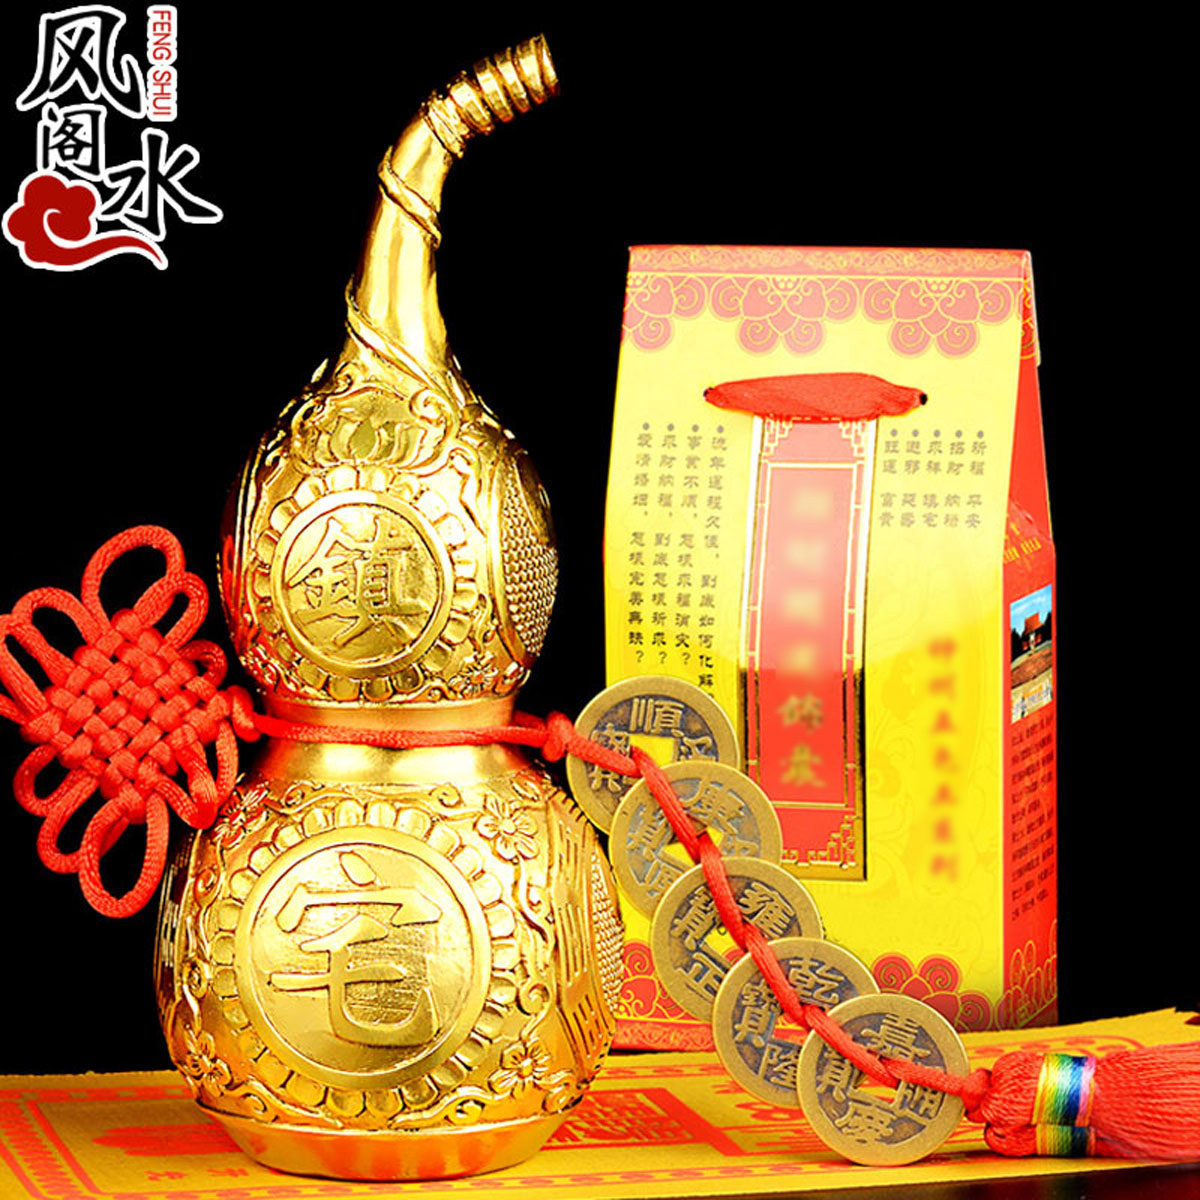 Fengshui Pavilion Copper Gourd Decoration Pure Copper Five Emperors Qian Genuine Merchandise Zhaocai Town Residential Shake Hanging Small Home Fengshui